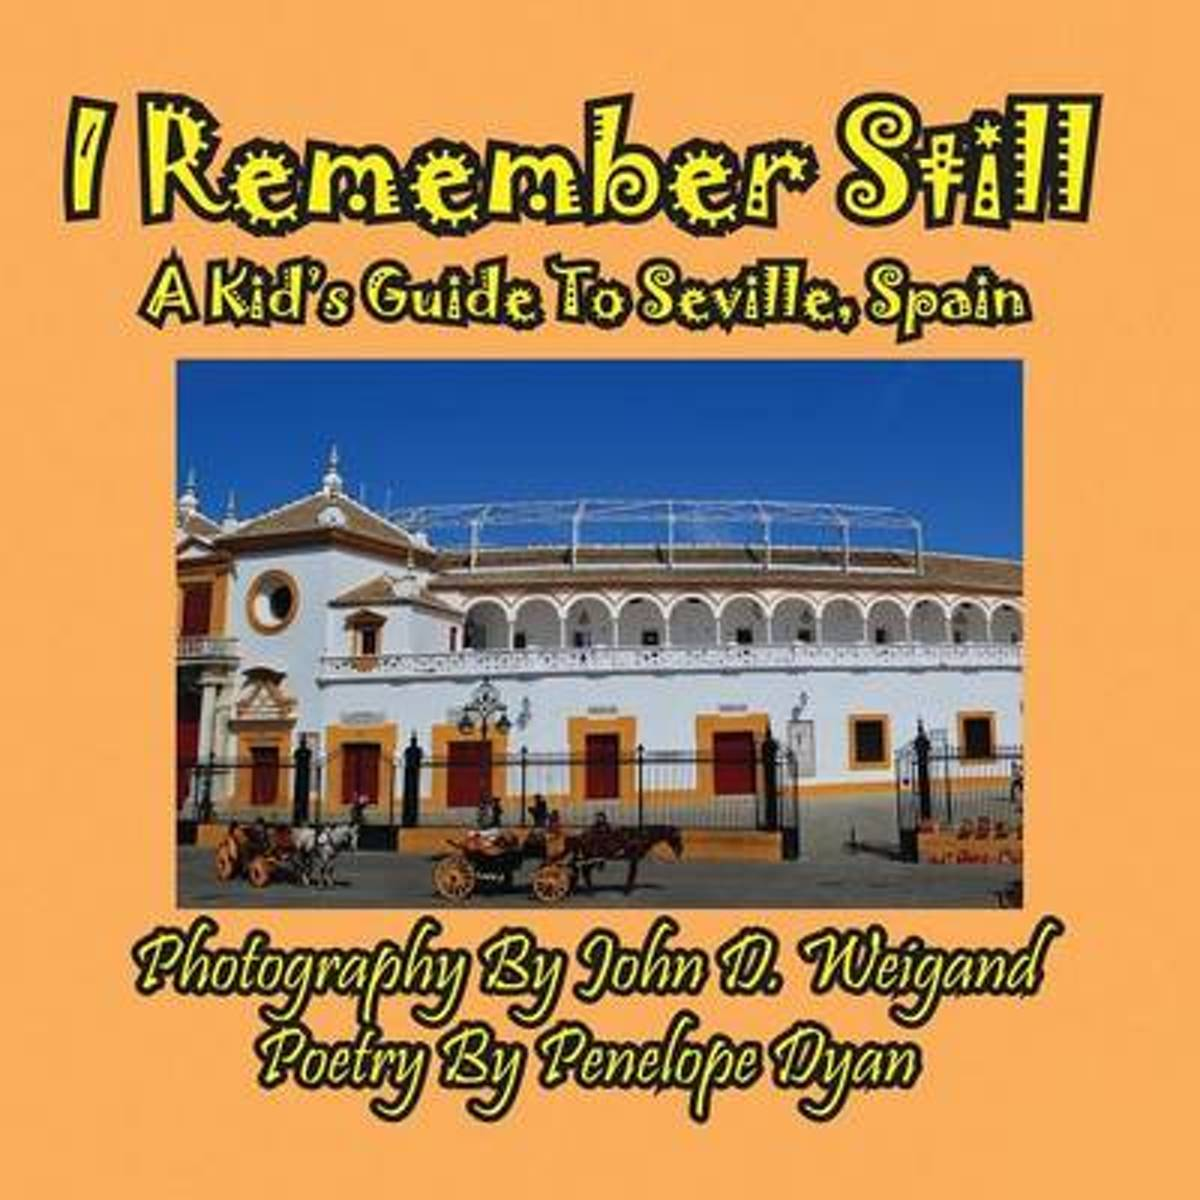 I Remember Still, a Kid's Guide to Seville, Spain